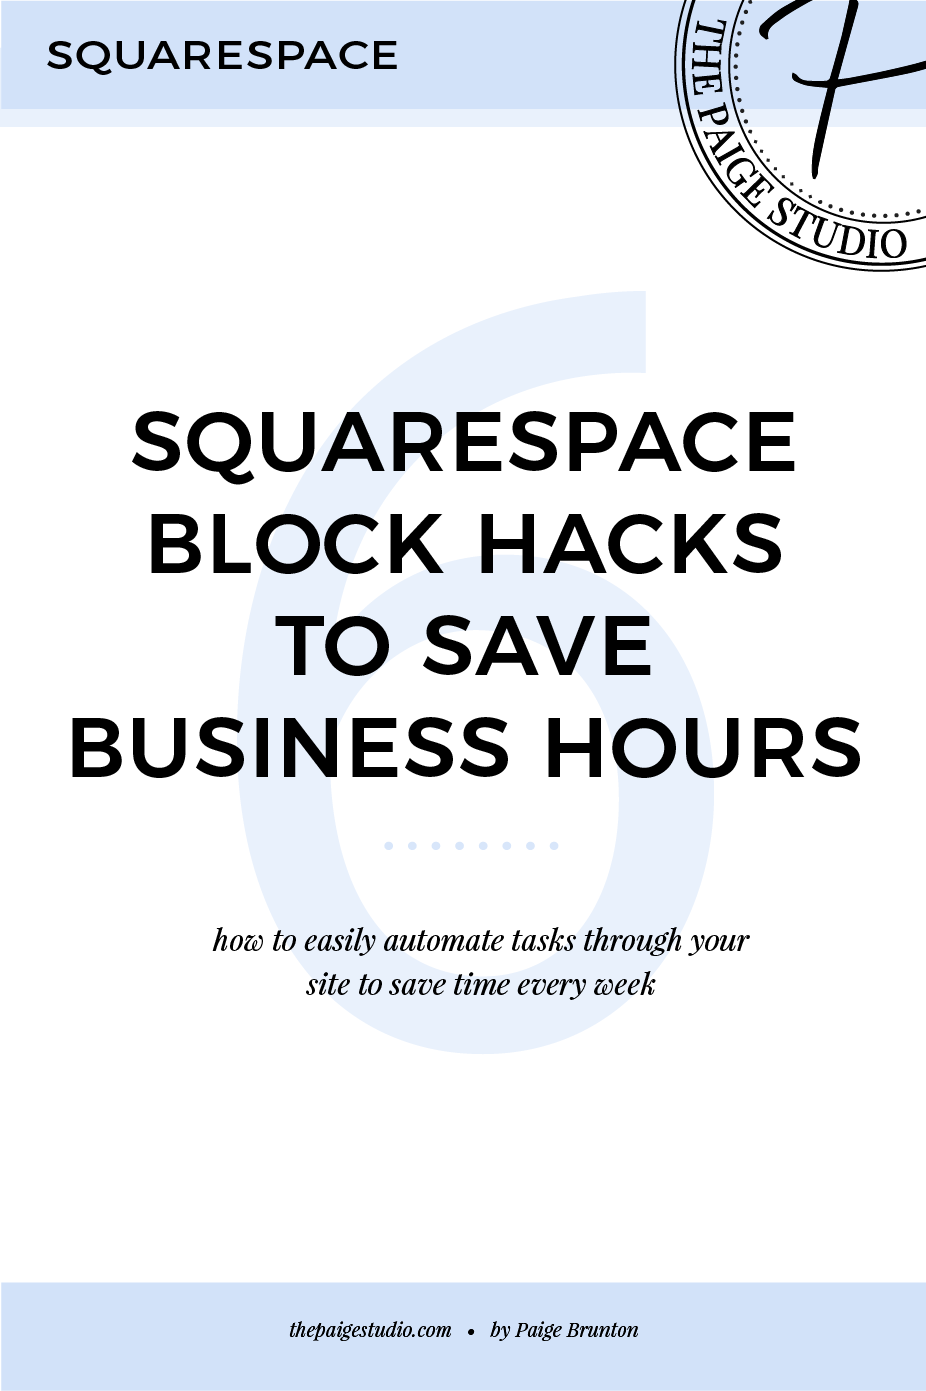 Squarespace block hacks to save business hours every week.png